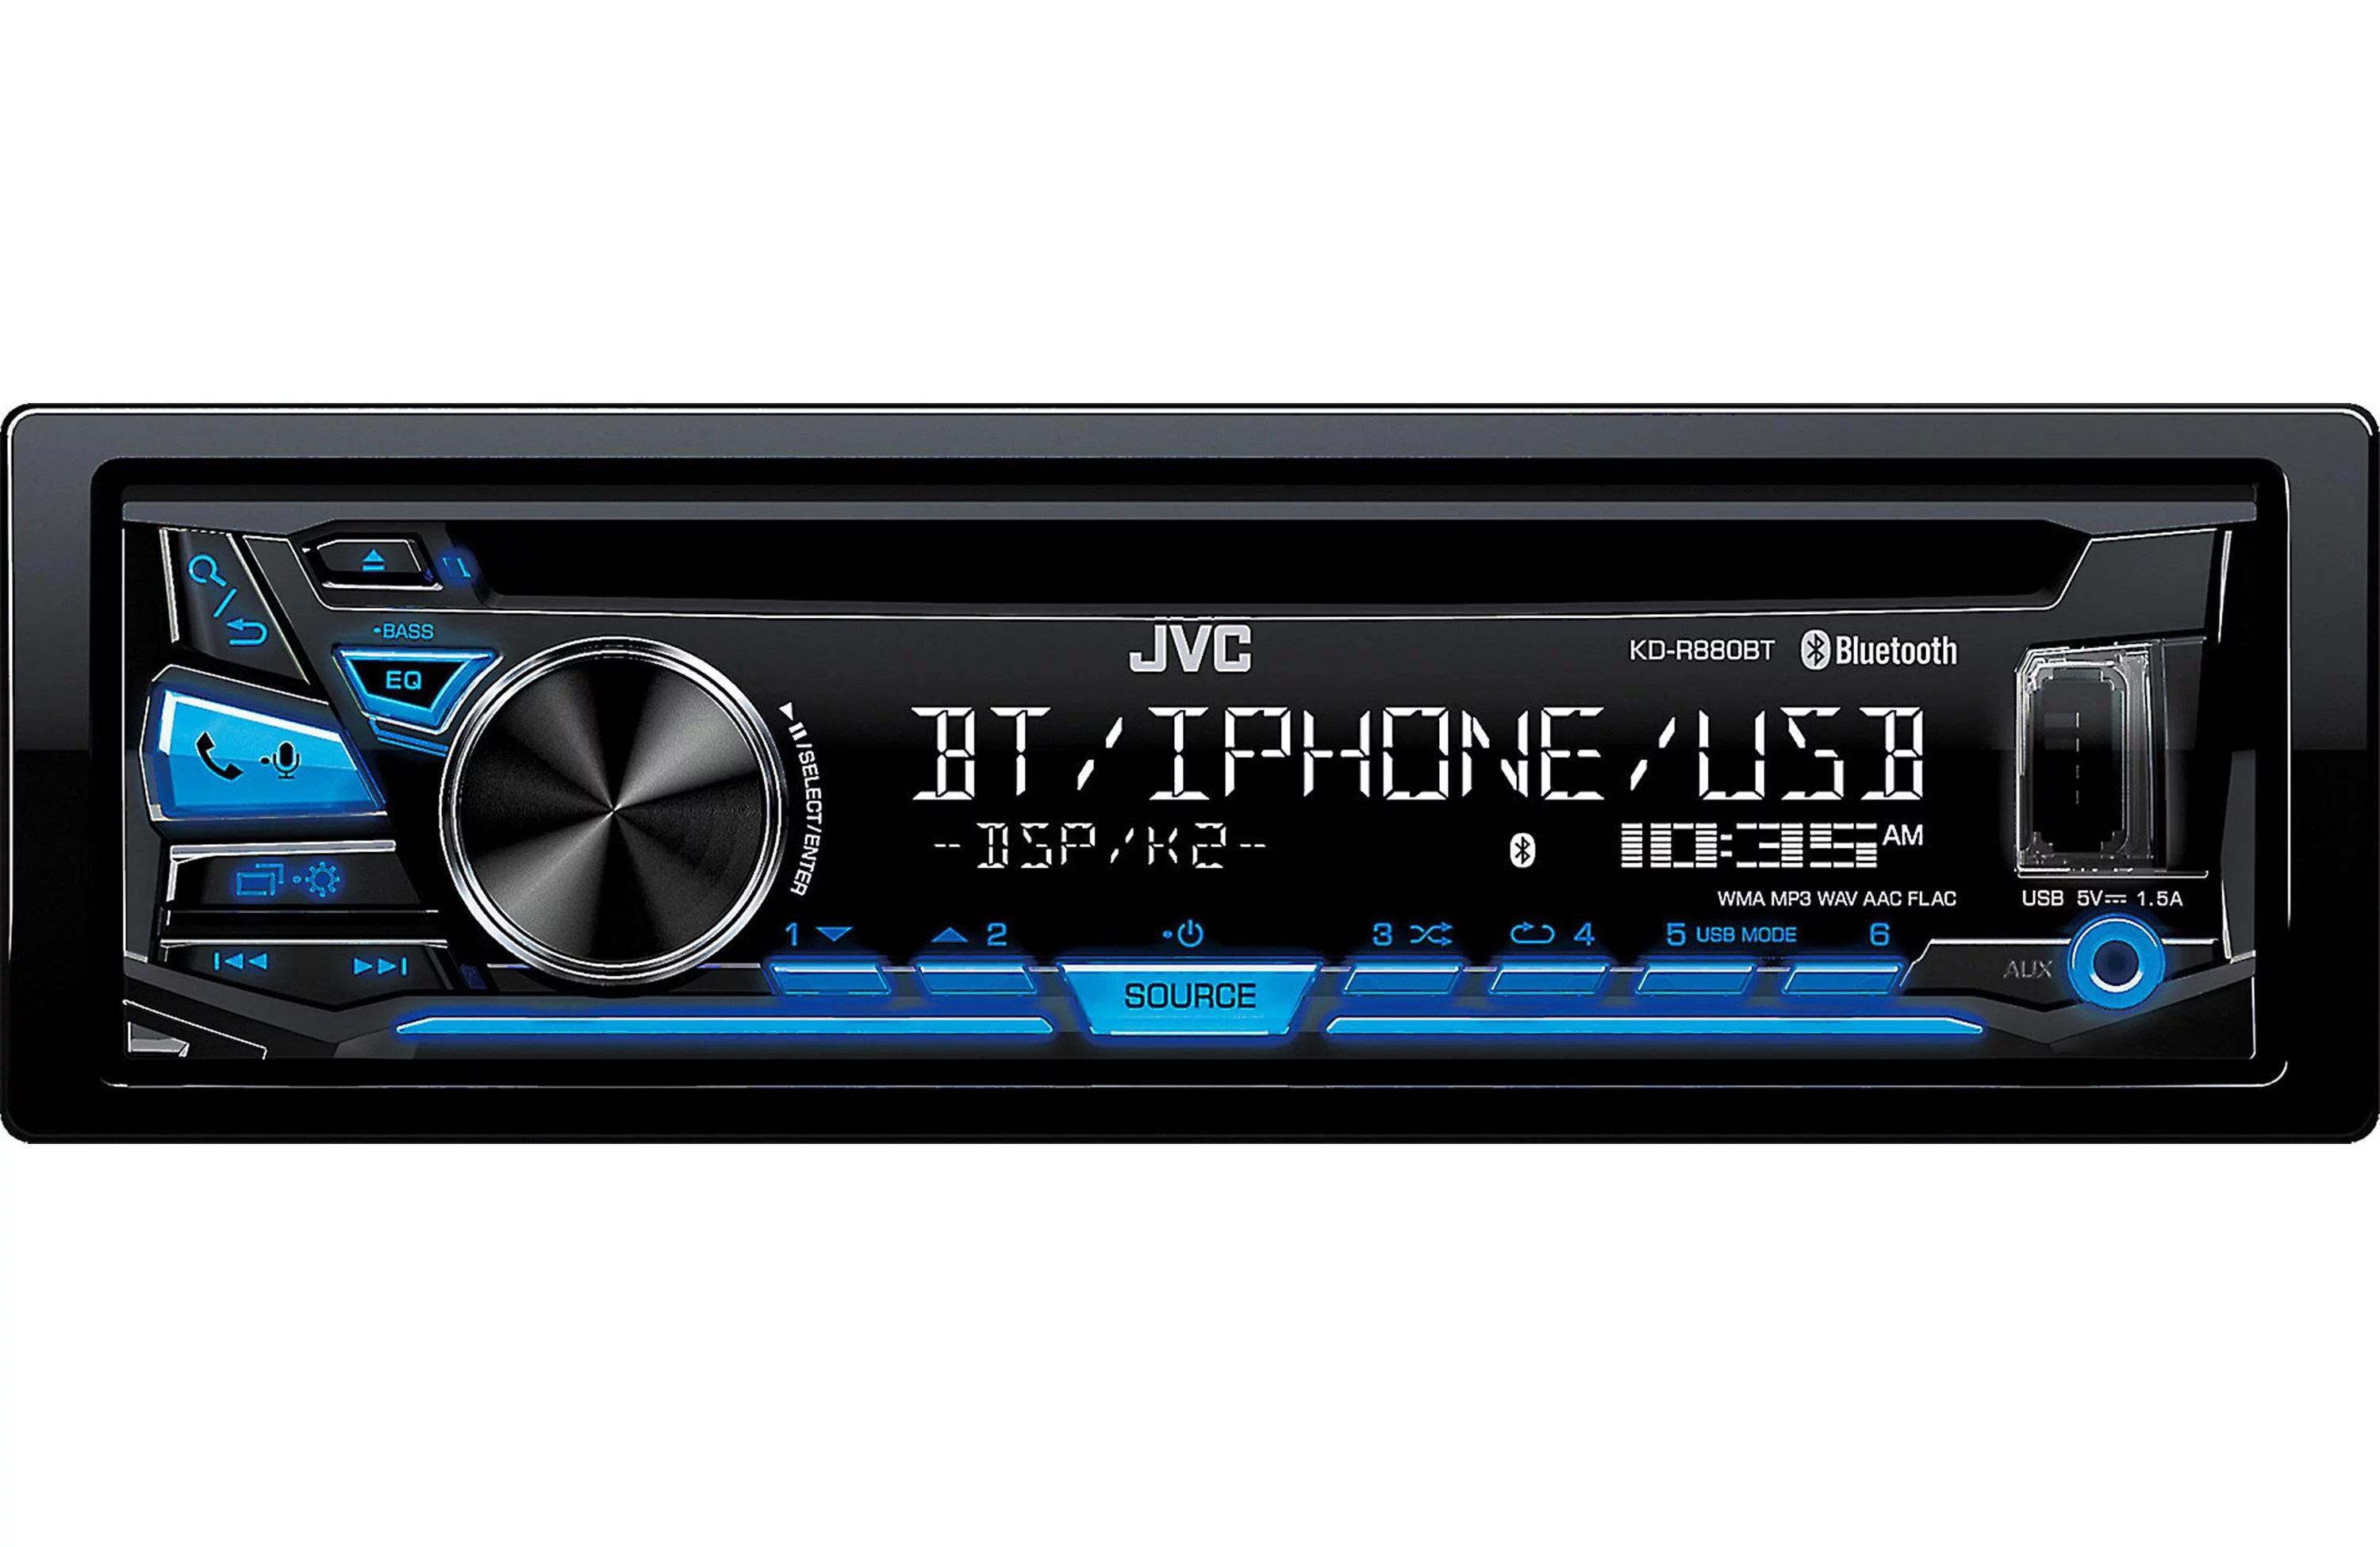 medium resolution of jvc kdsr83bt in dash cd built in bluetooth usb and detachable jvc kd r330 wiring jvc bluetooth wiring diagram